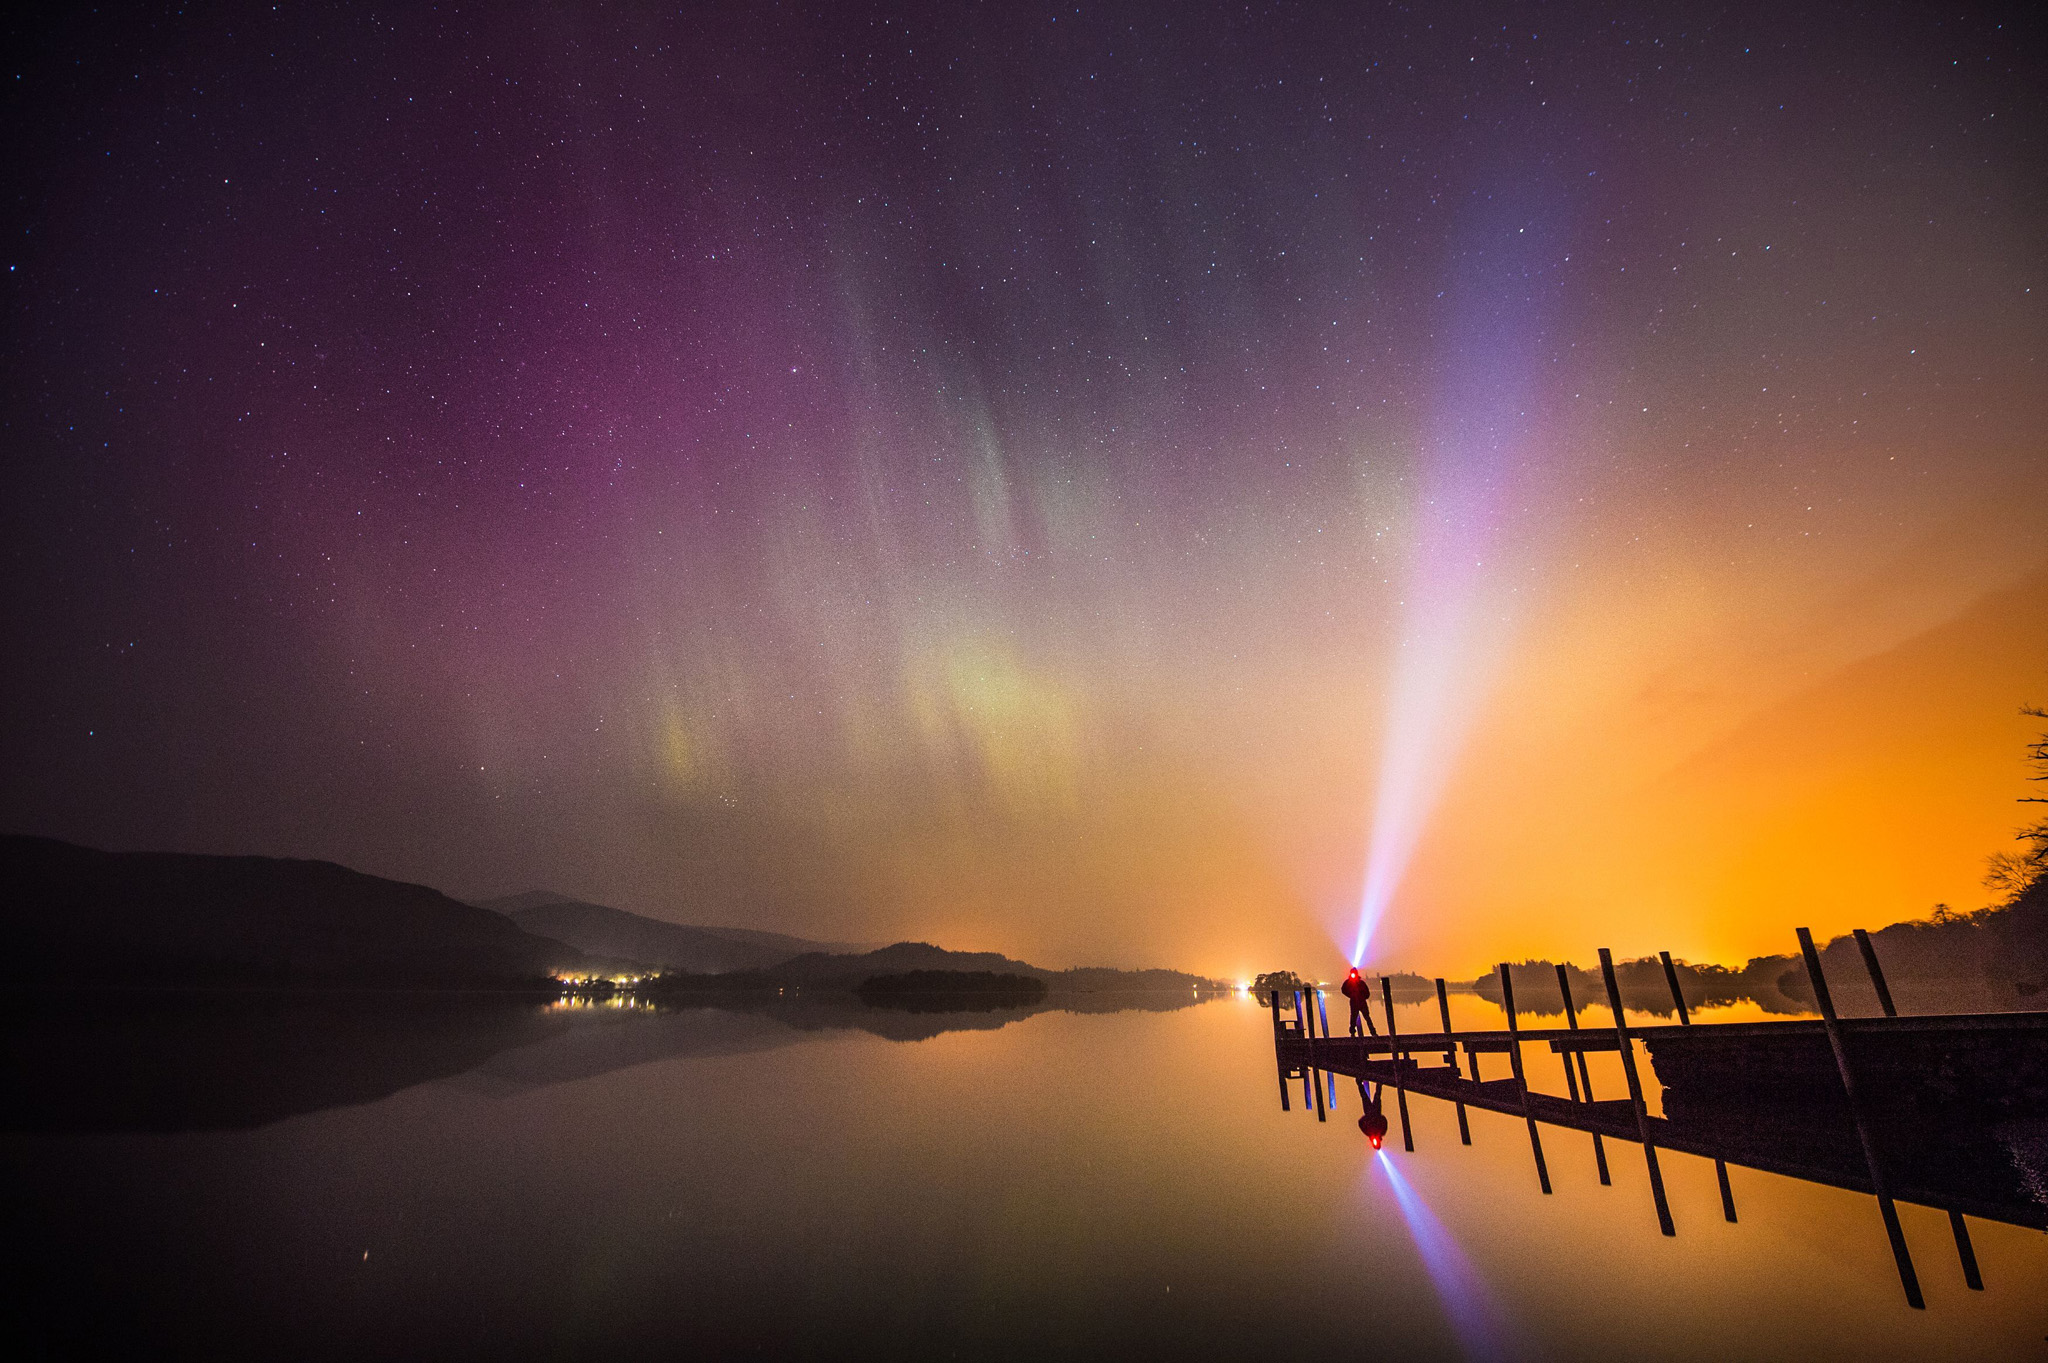 Northern lights show...The aurora borealis, or the northern lights as they are commonly known, over Derwent water near Keswick in the Lake District. PRESS ASSOCIATION Photo. Picture date: Wednesday March 18, 2015. See PA story ENVIRONMENT Aurora. Photo credit should read: Owen Humphreys/PA Wire